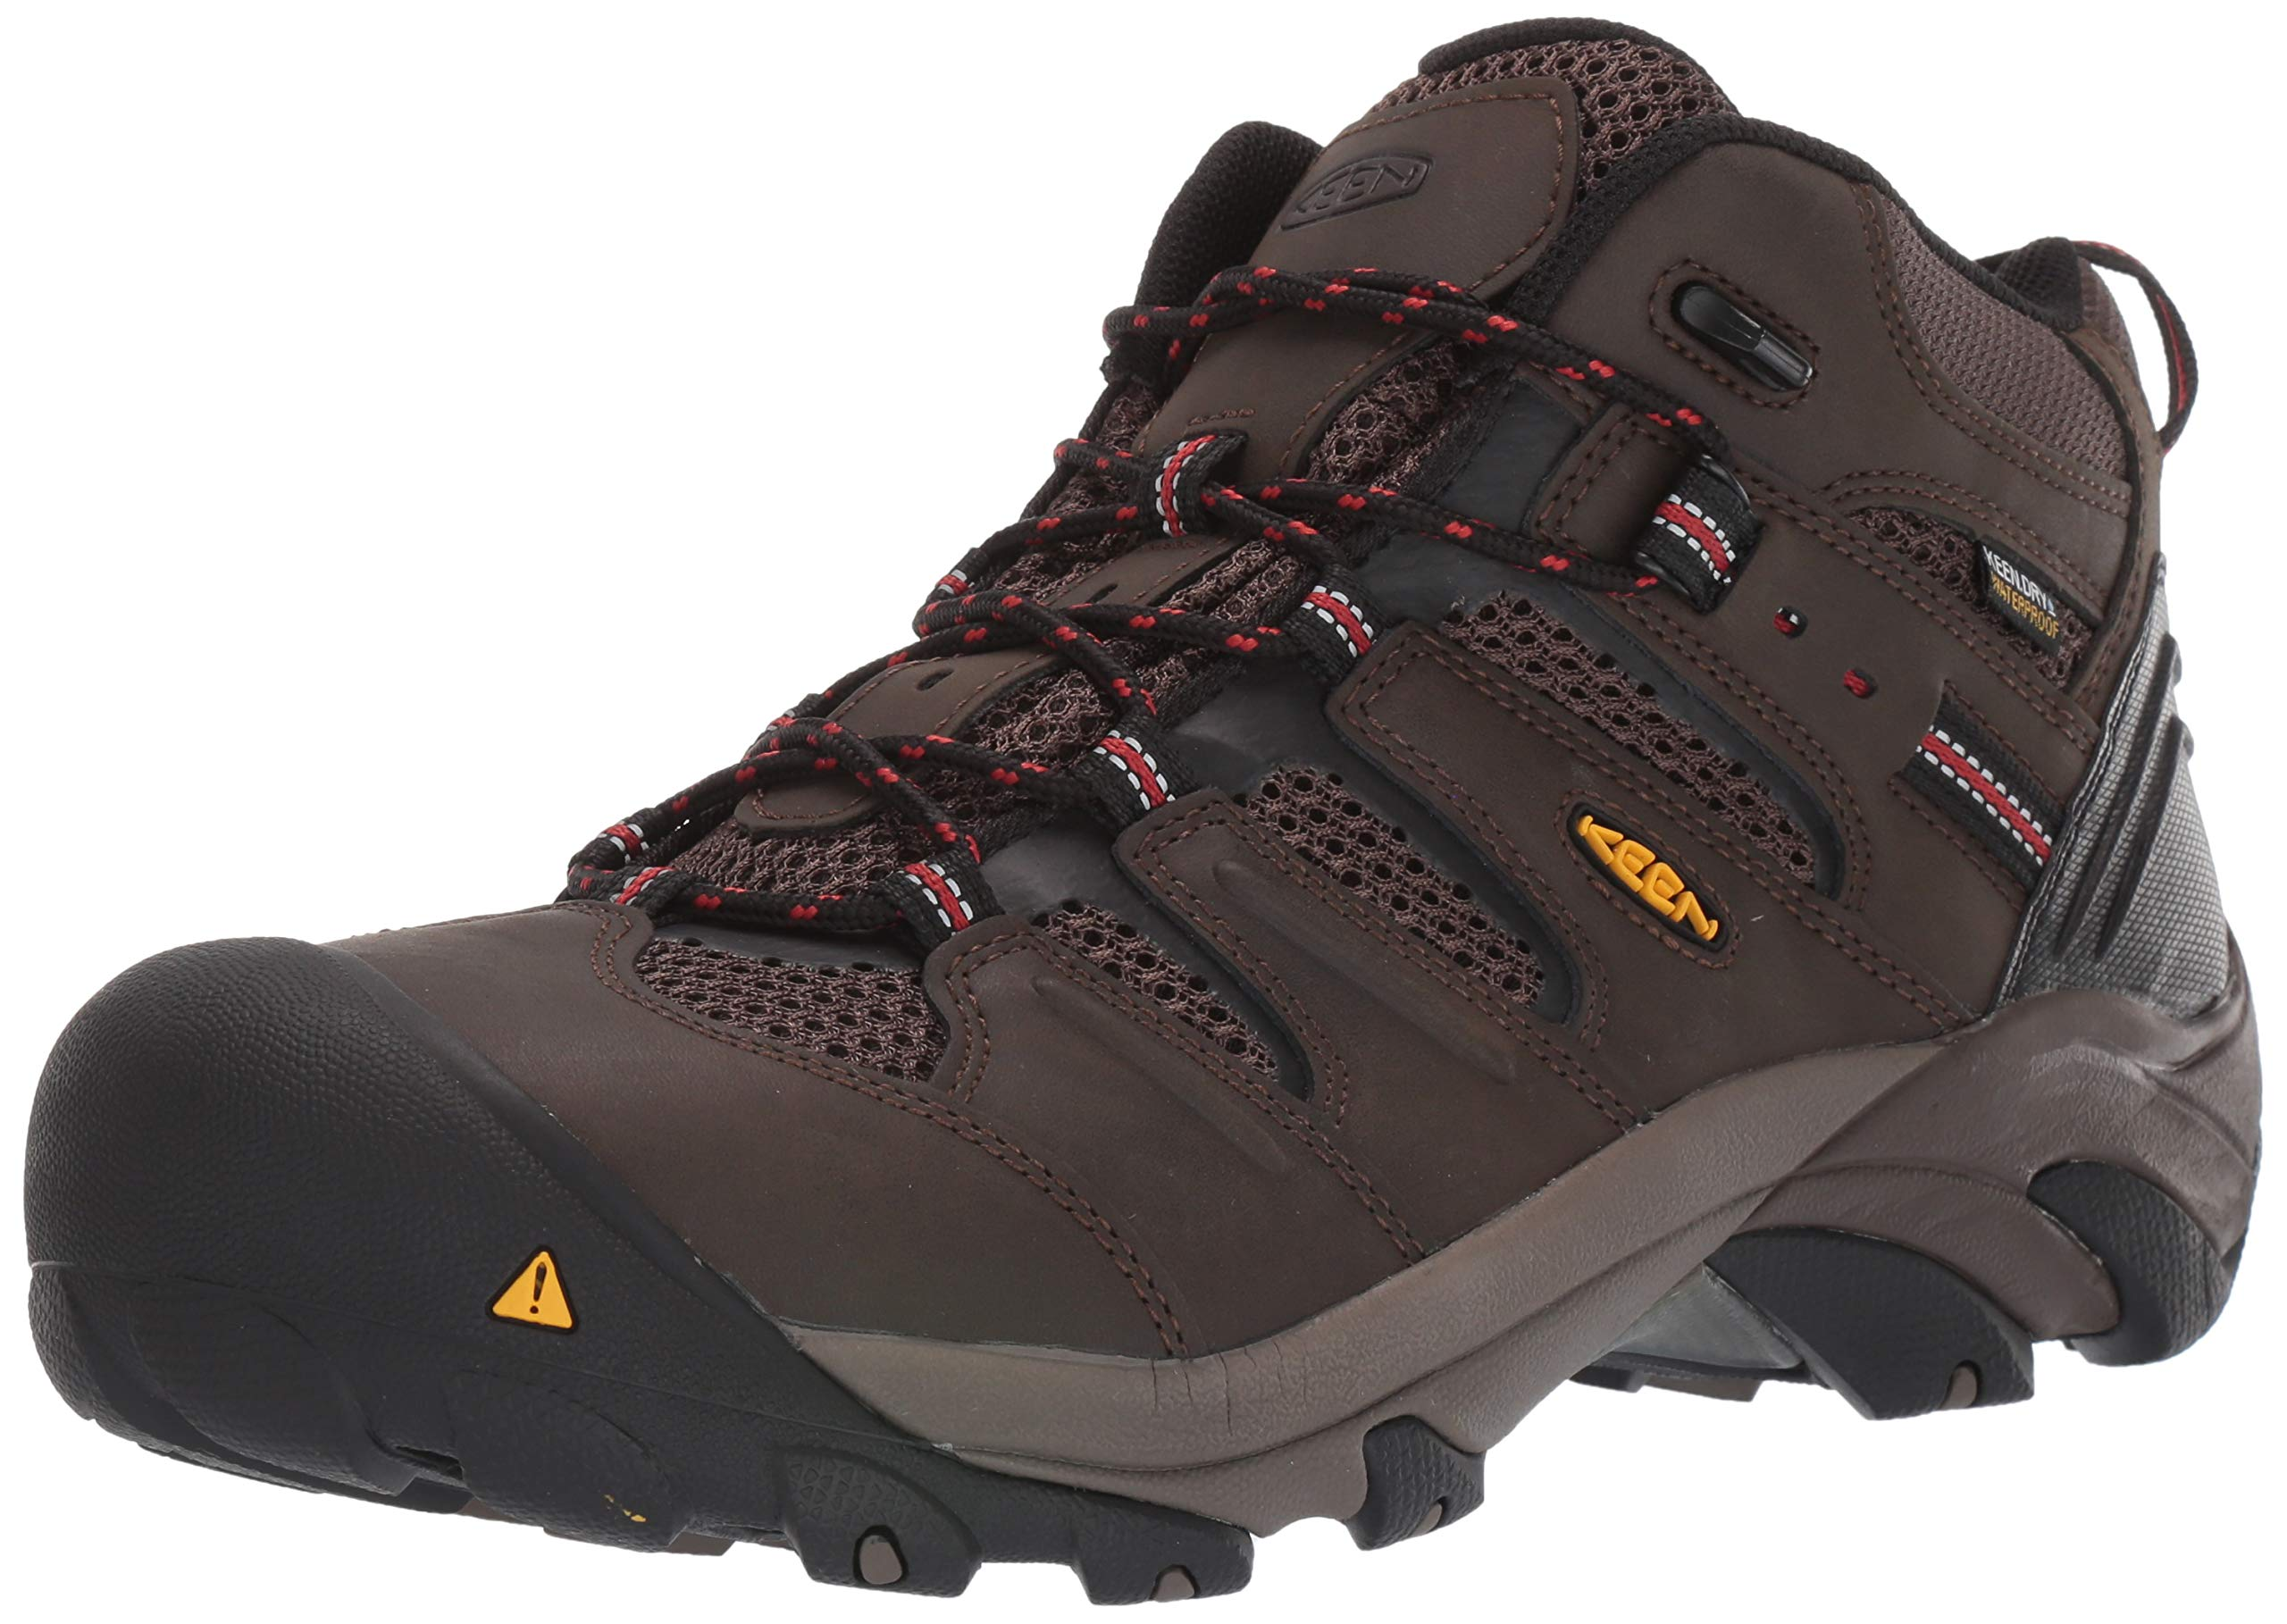 KEEN Utility Men's Lansing Mid WP Industrial Boot ,Cascade Brown/Shiitake, 11 D US by KEEN Utility